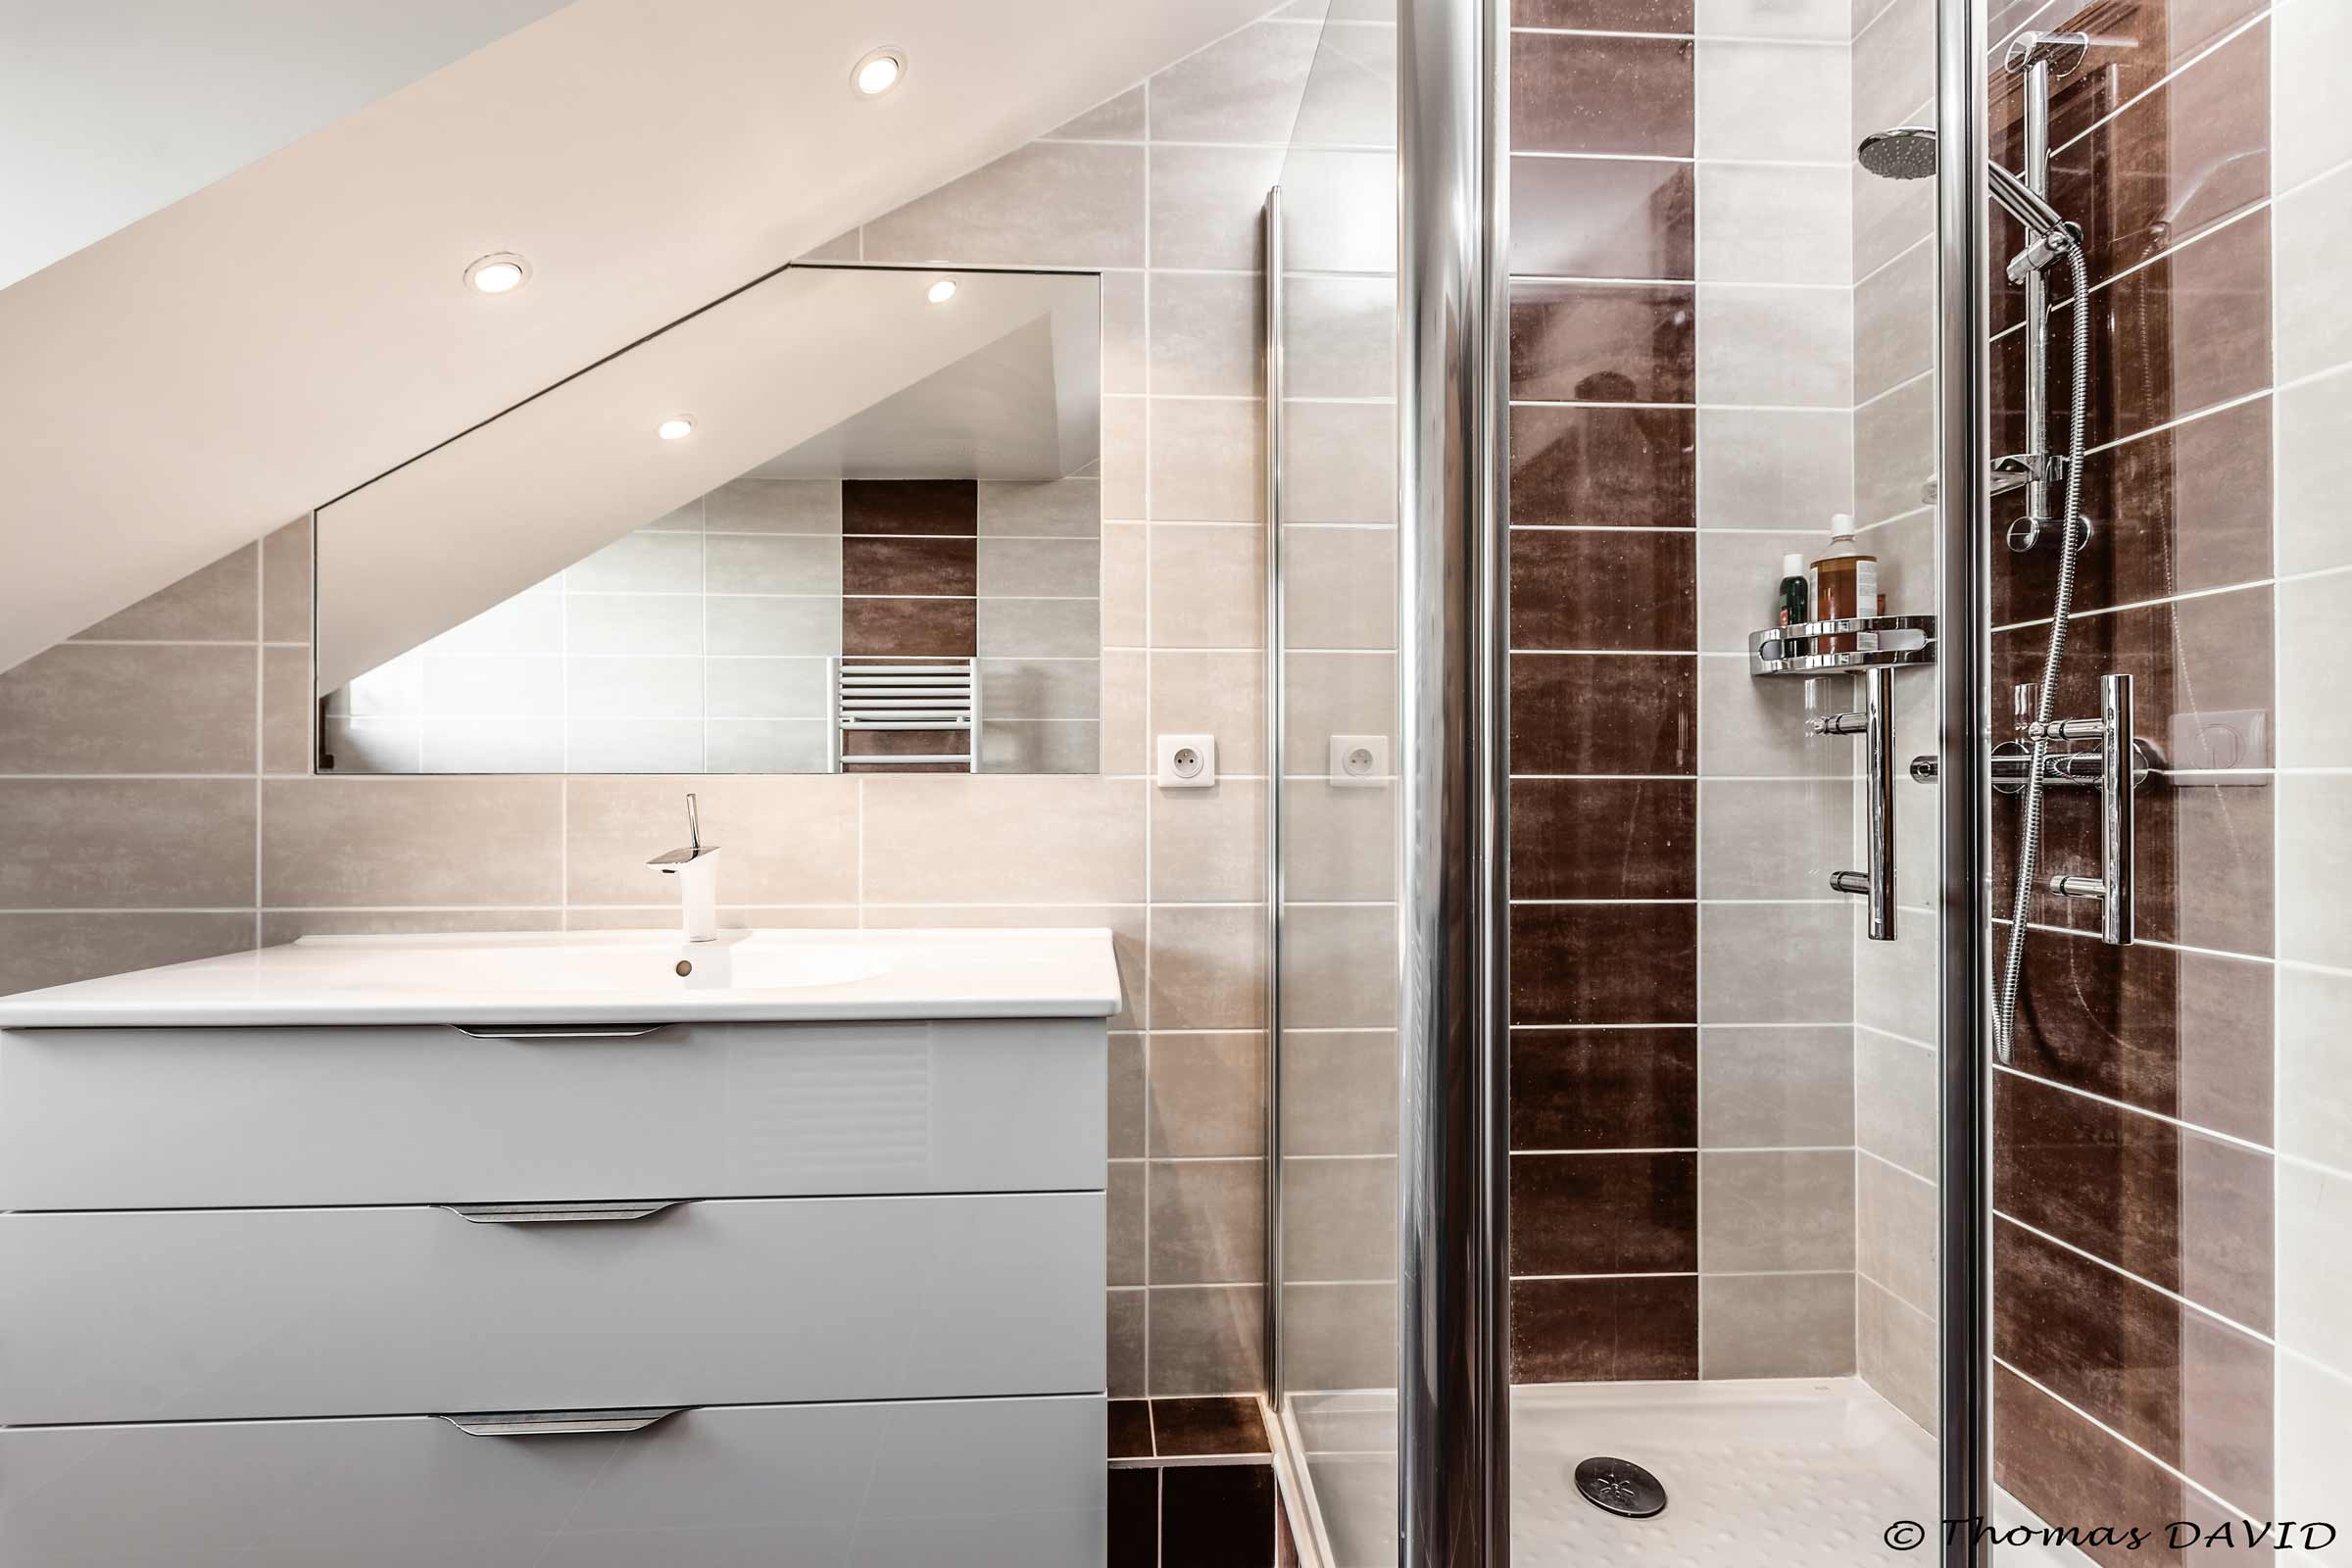 salle de bain grenoble douche lavabo miroir integre faience ar interieur. Black Bedroom Furniture Sets. Home Design Ideas